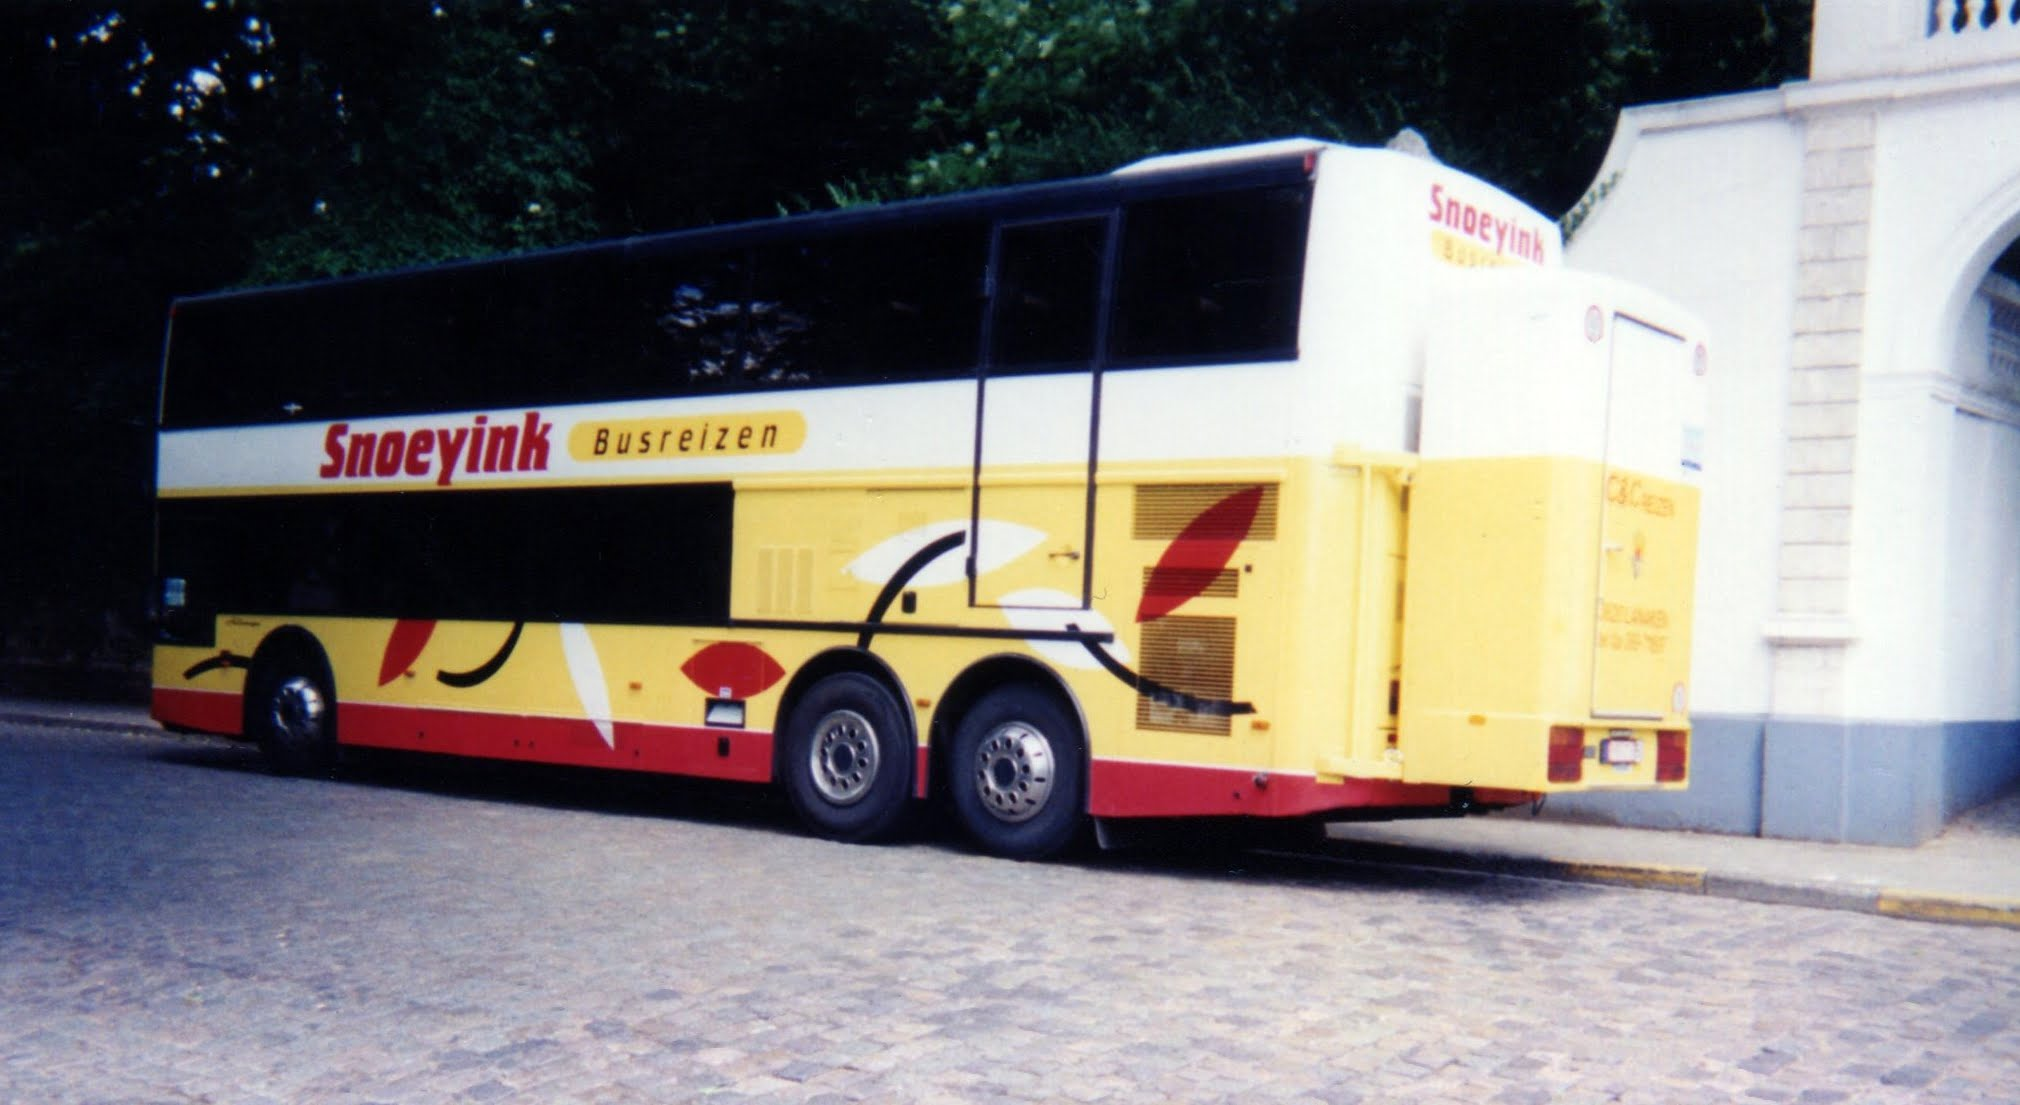 Vanhool pendel bus